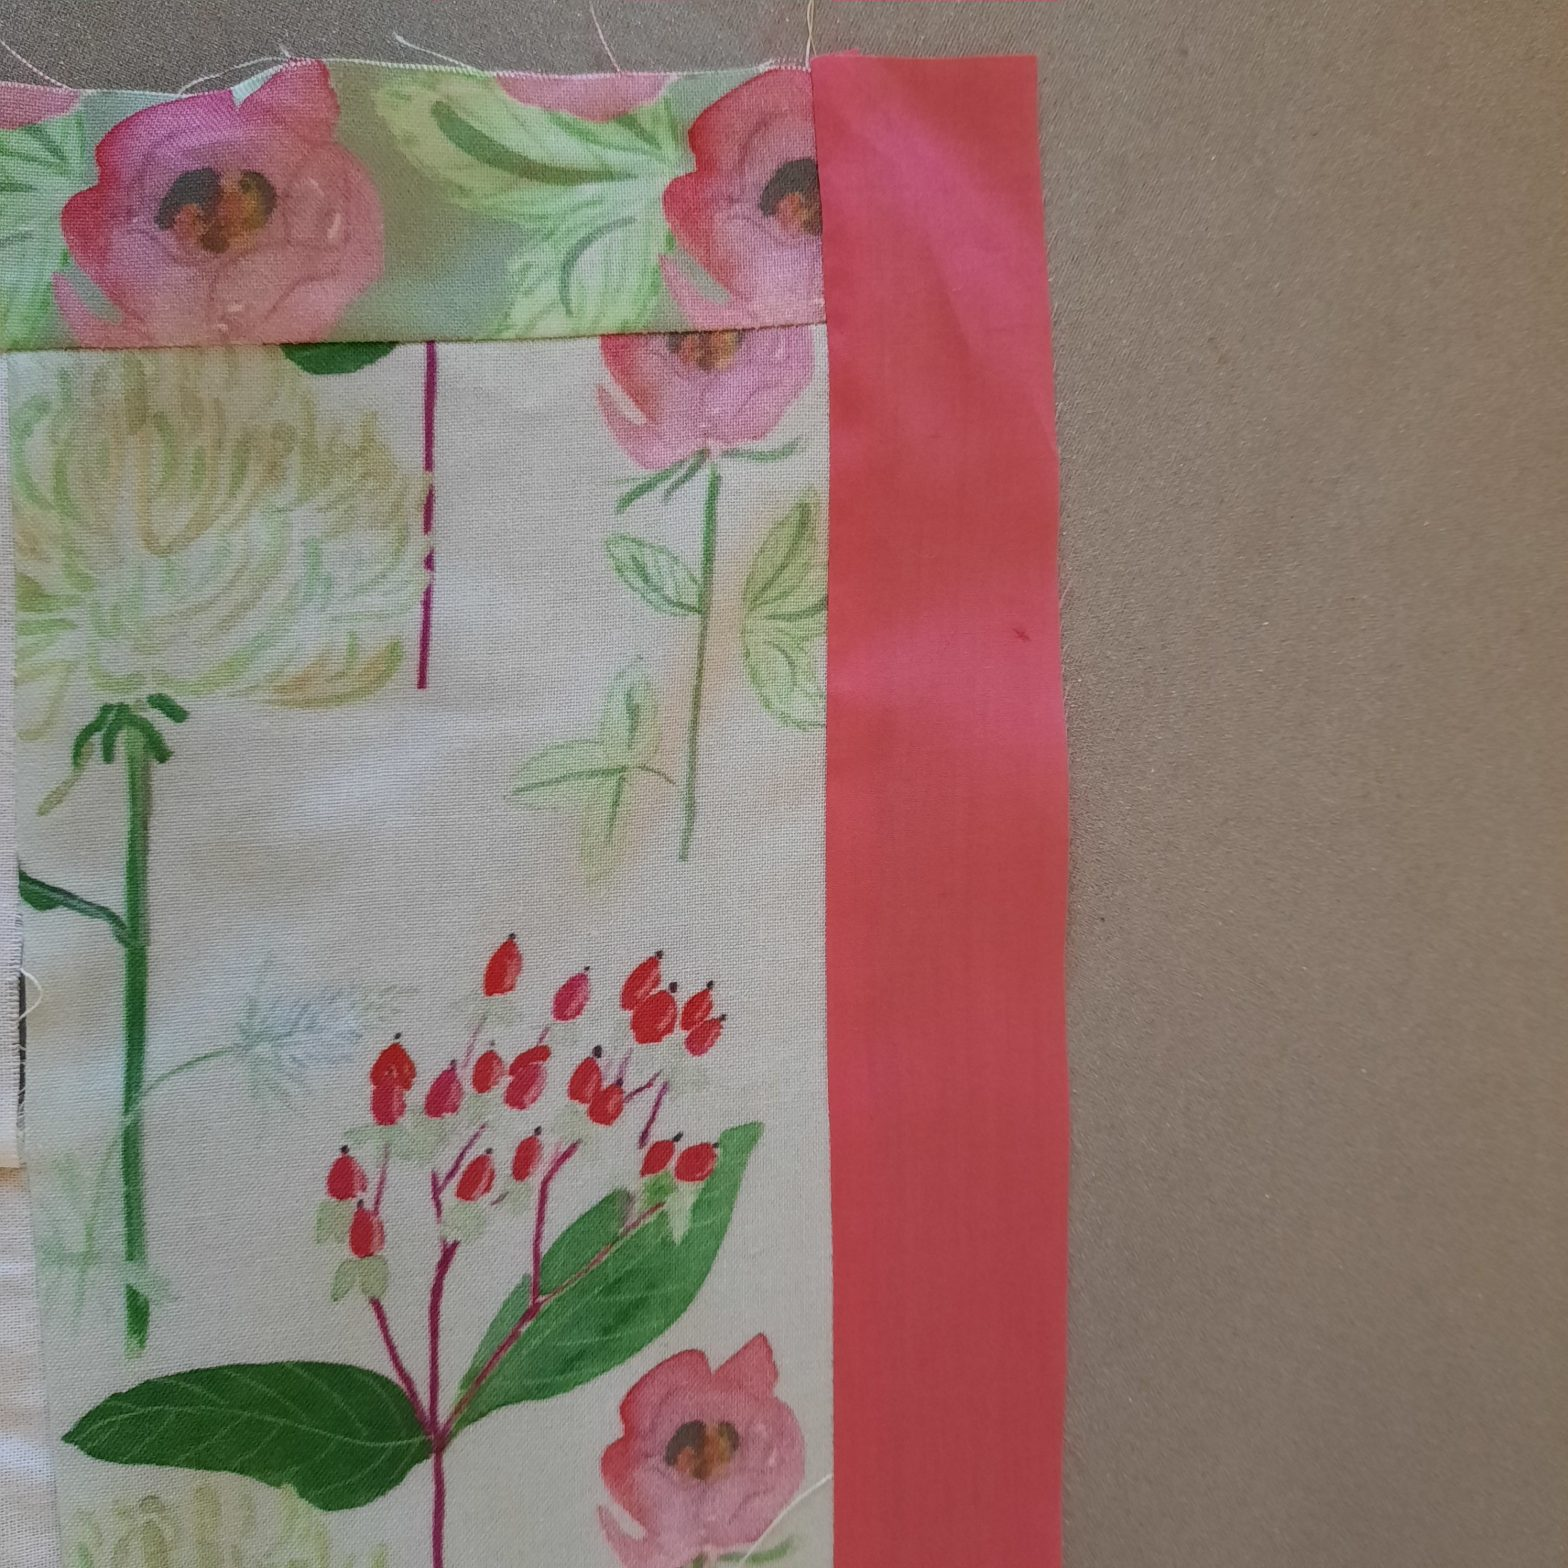 Adding the pink internal border to the 'Summer Bouquets' quilt, the photo shows the narrow roses border at the top and the pink border at the right of the quilt-top